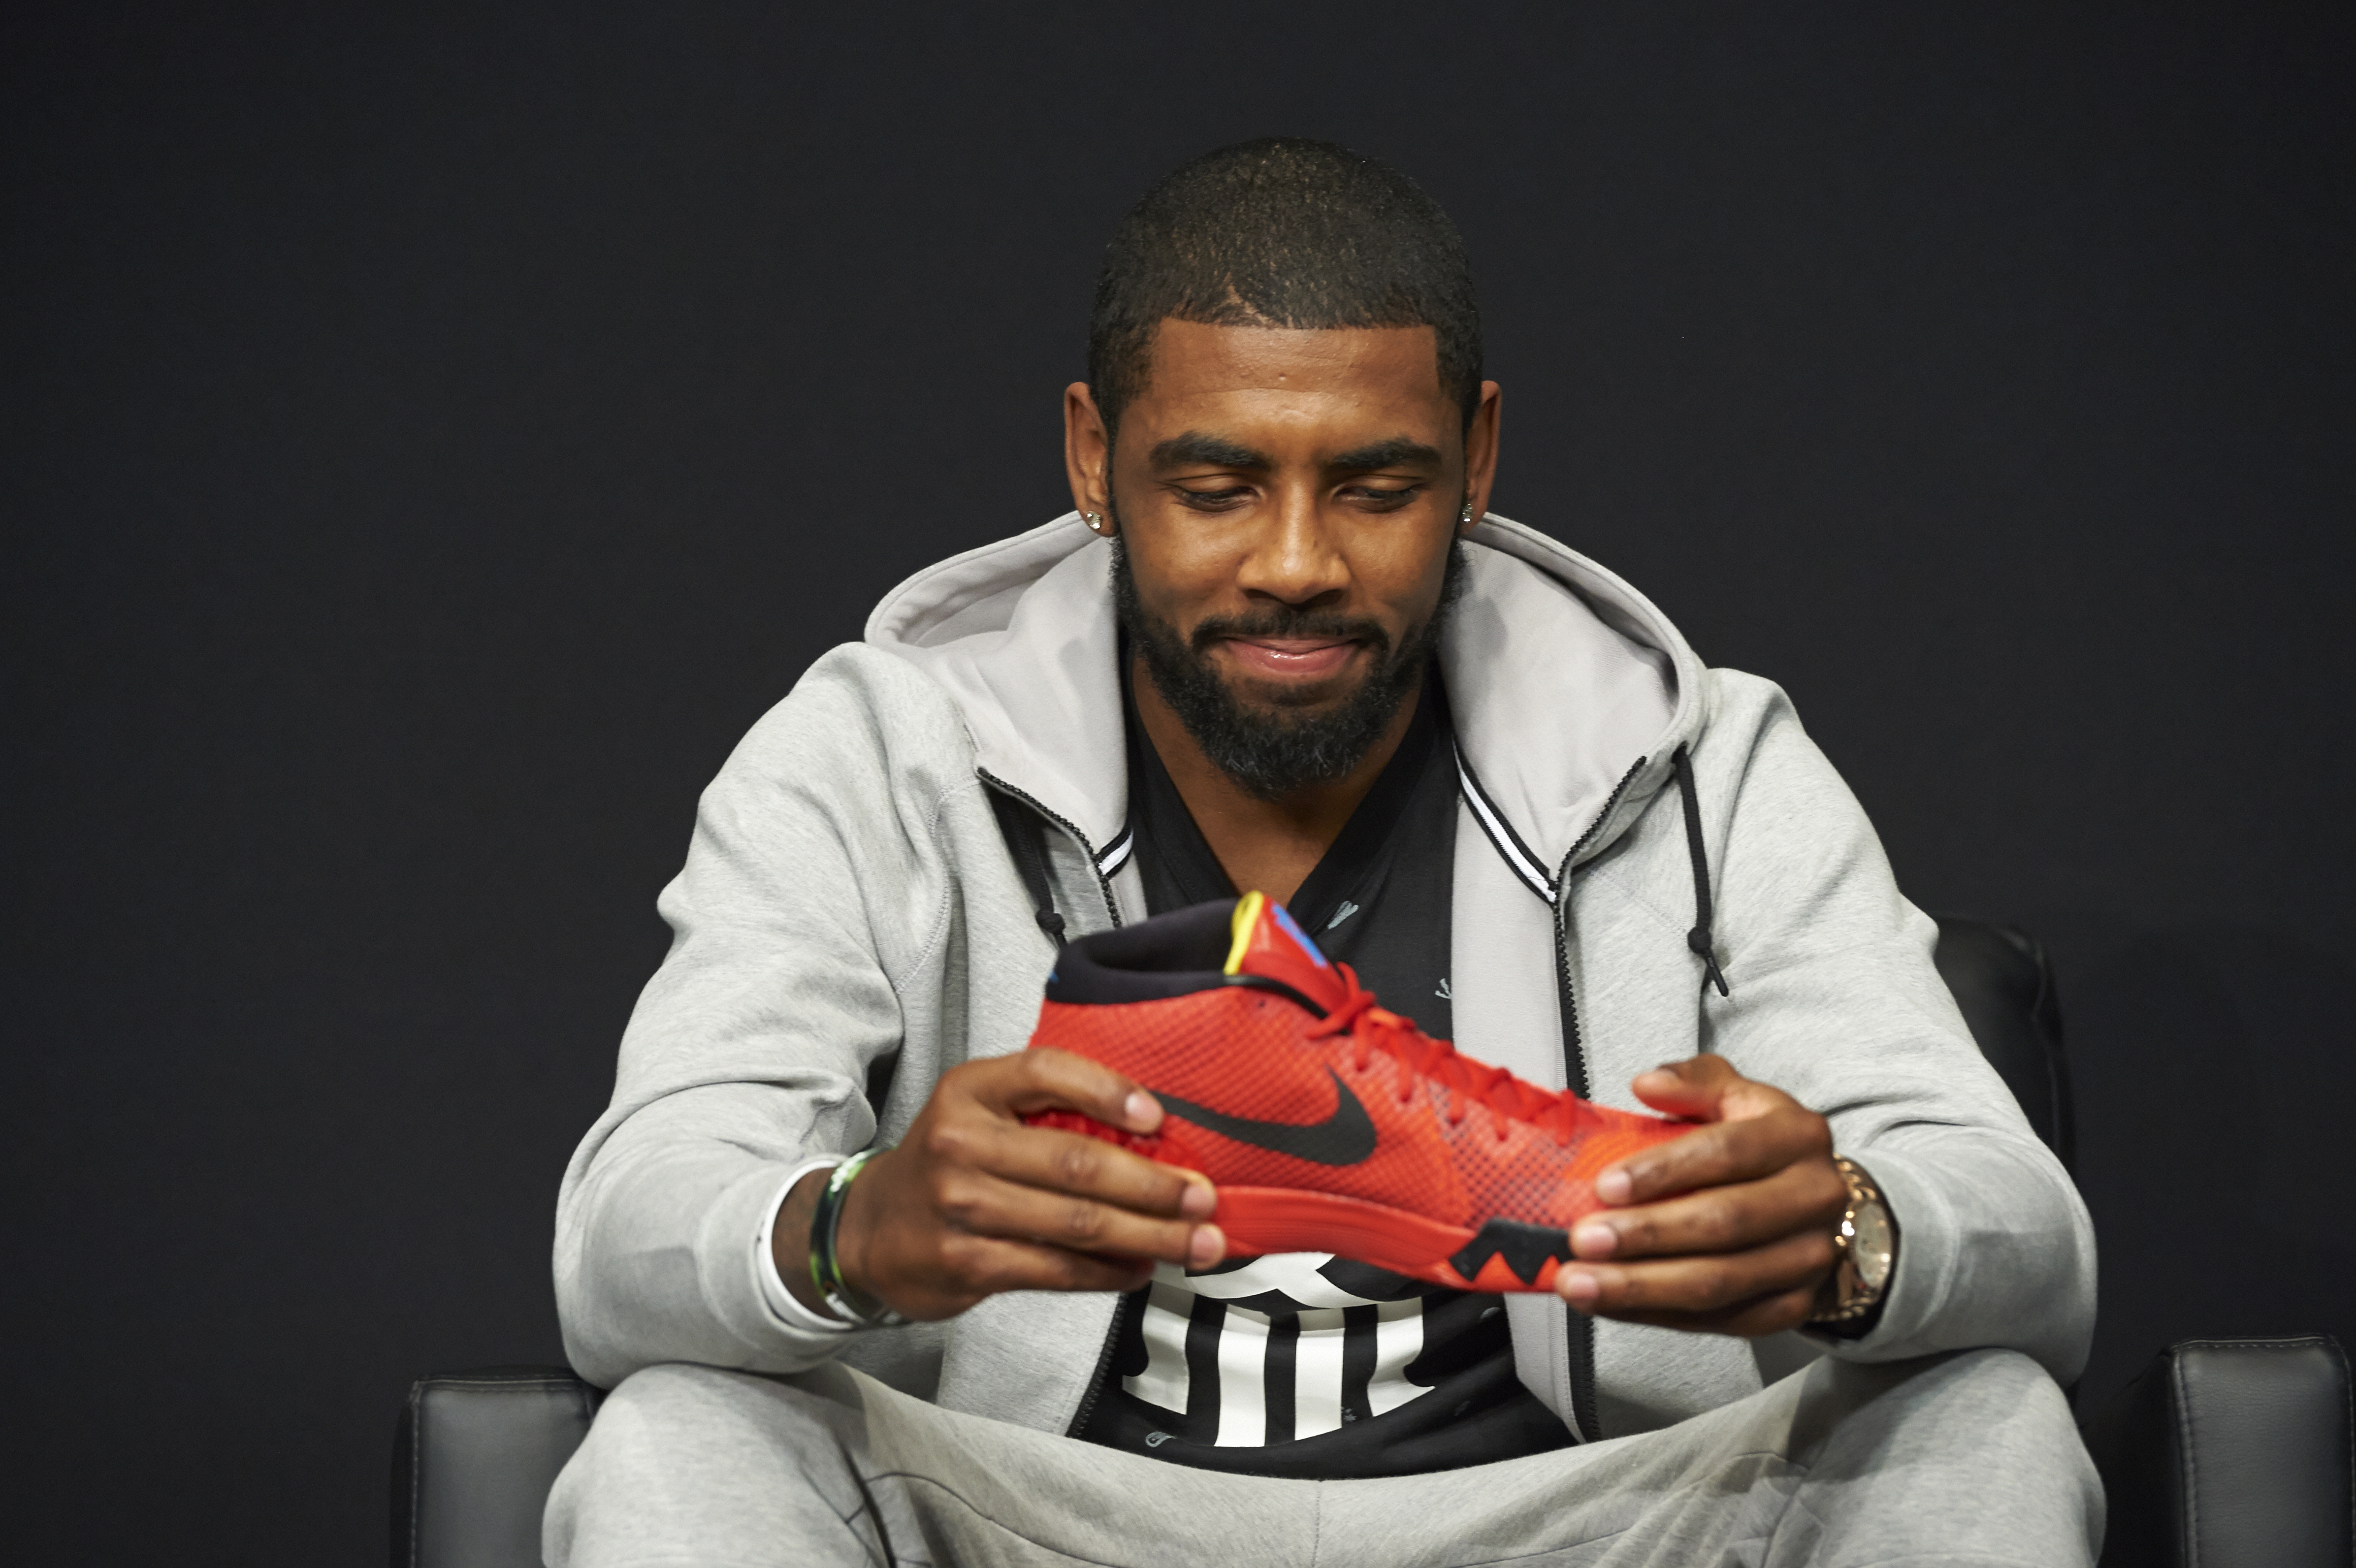 10 things you don't know about Kyrie Irving - Nike News